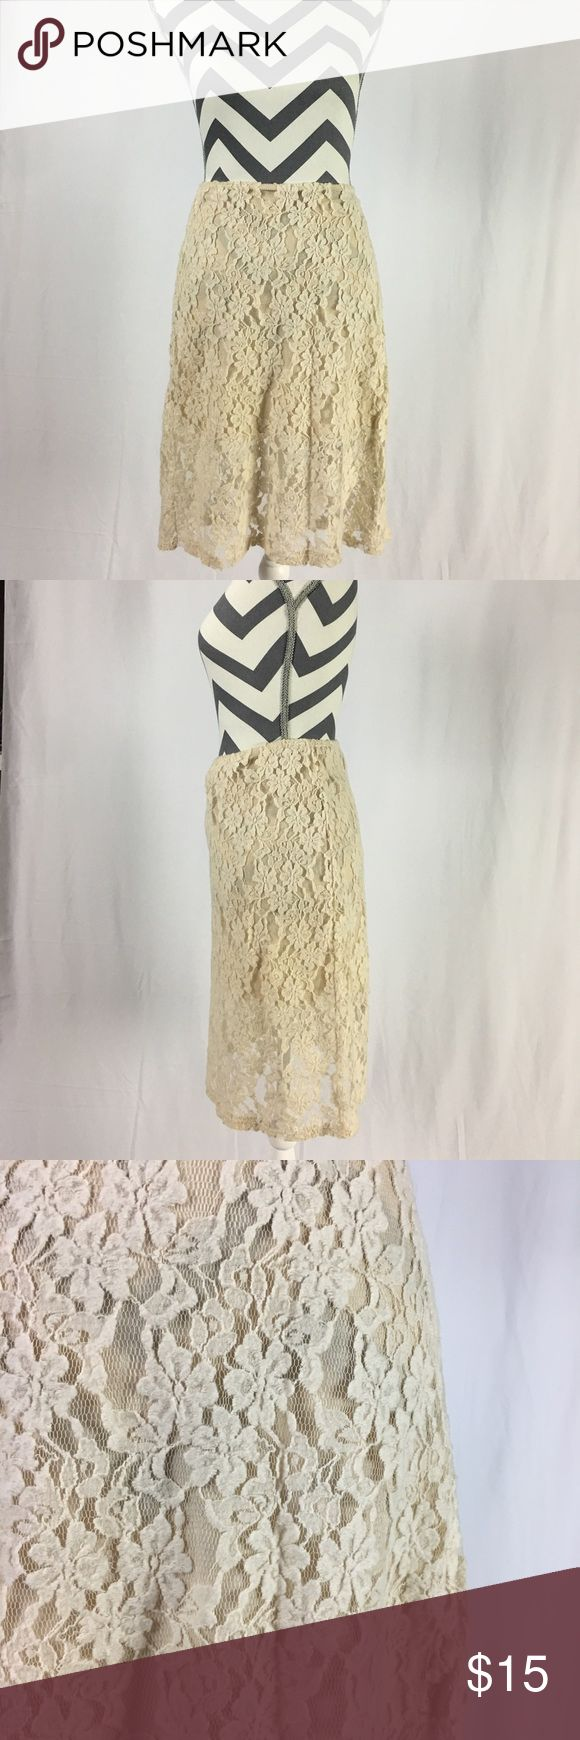 Lace Midi Skirt Below the knee lace romantic skirt. Interior lining stops above the knee. Off white color. Size large. Purchase from Apricot Lane Boutique (Peoria IL). 100% polyester. Hand wash in cold water. Hang to dry. Jella Couture Skirts Midi